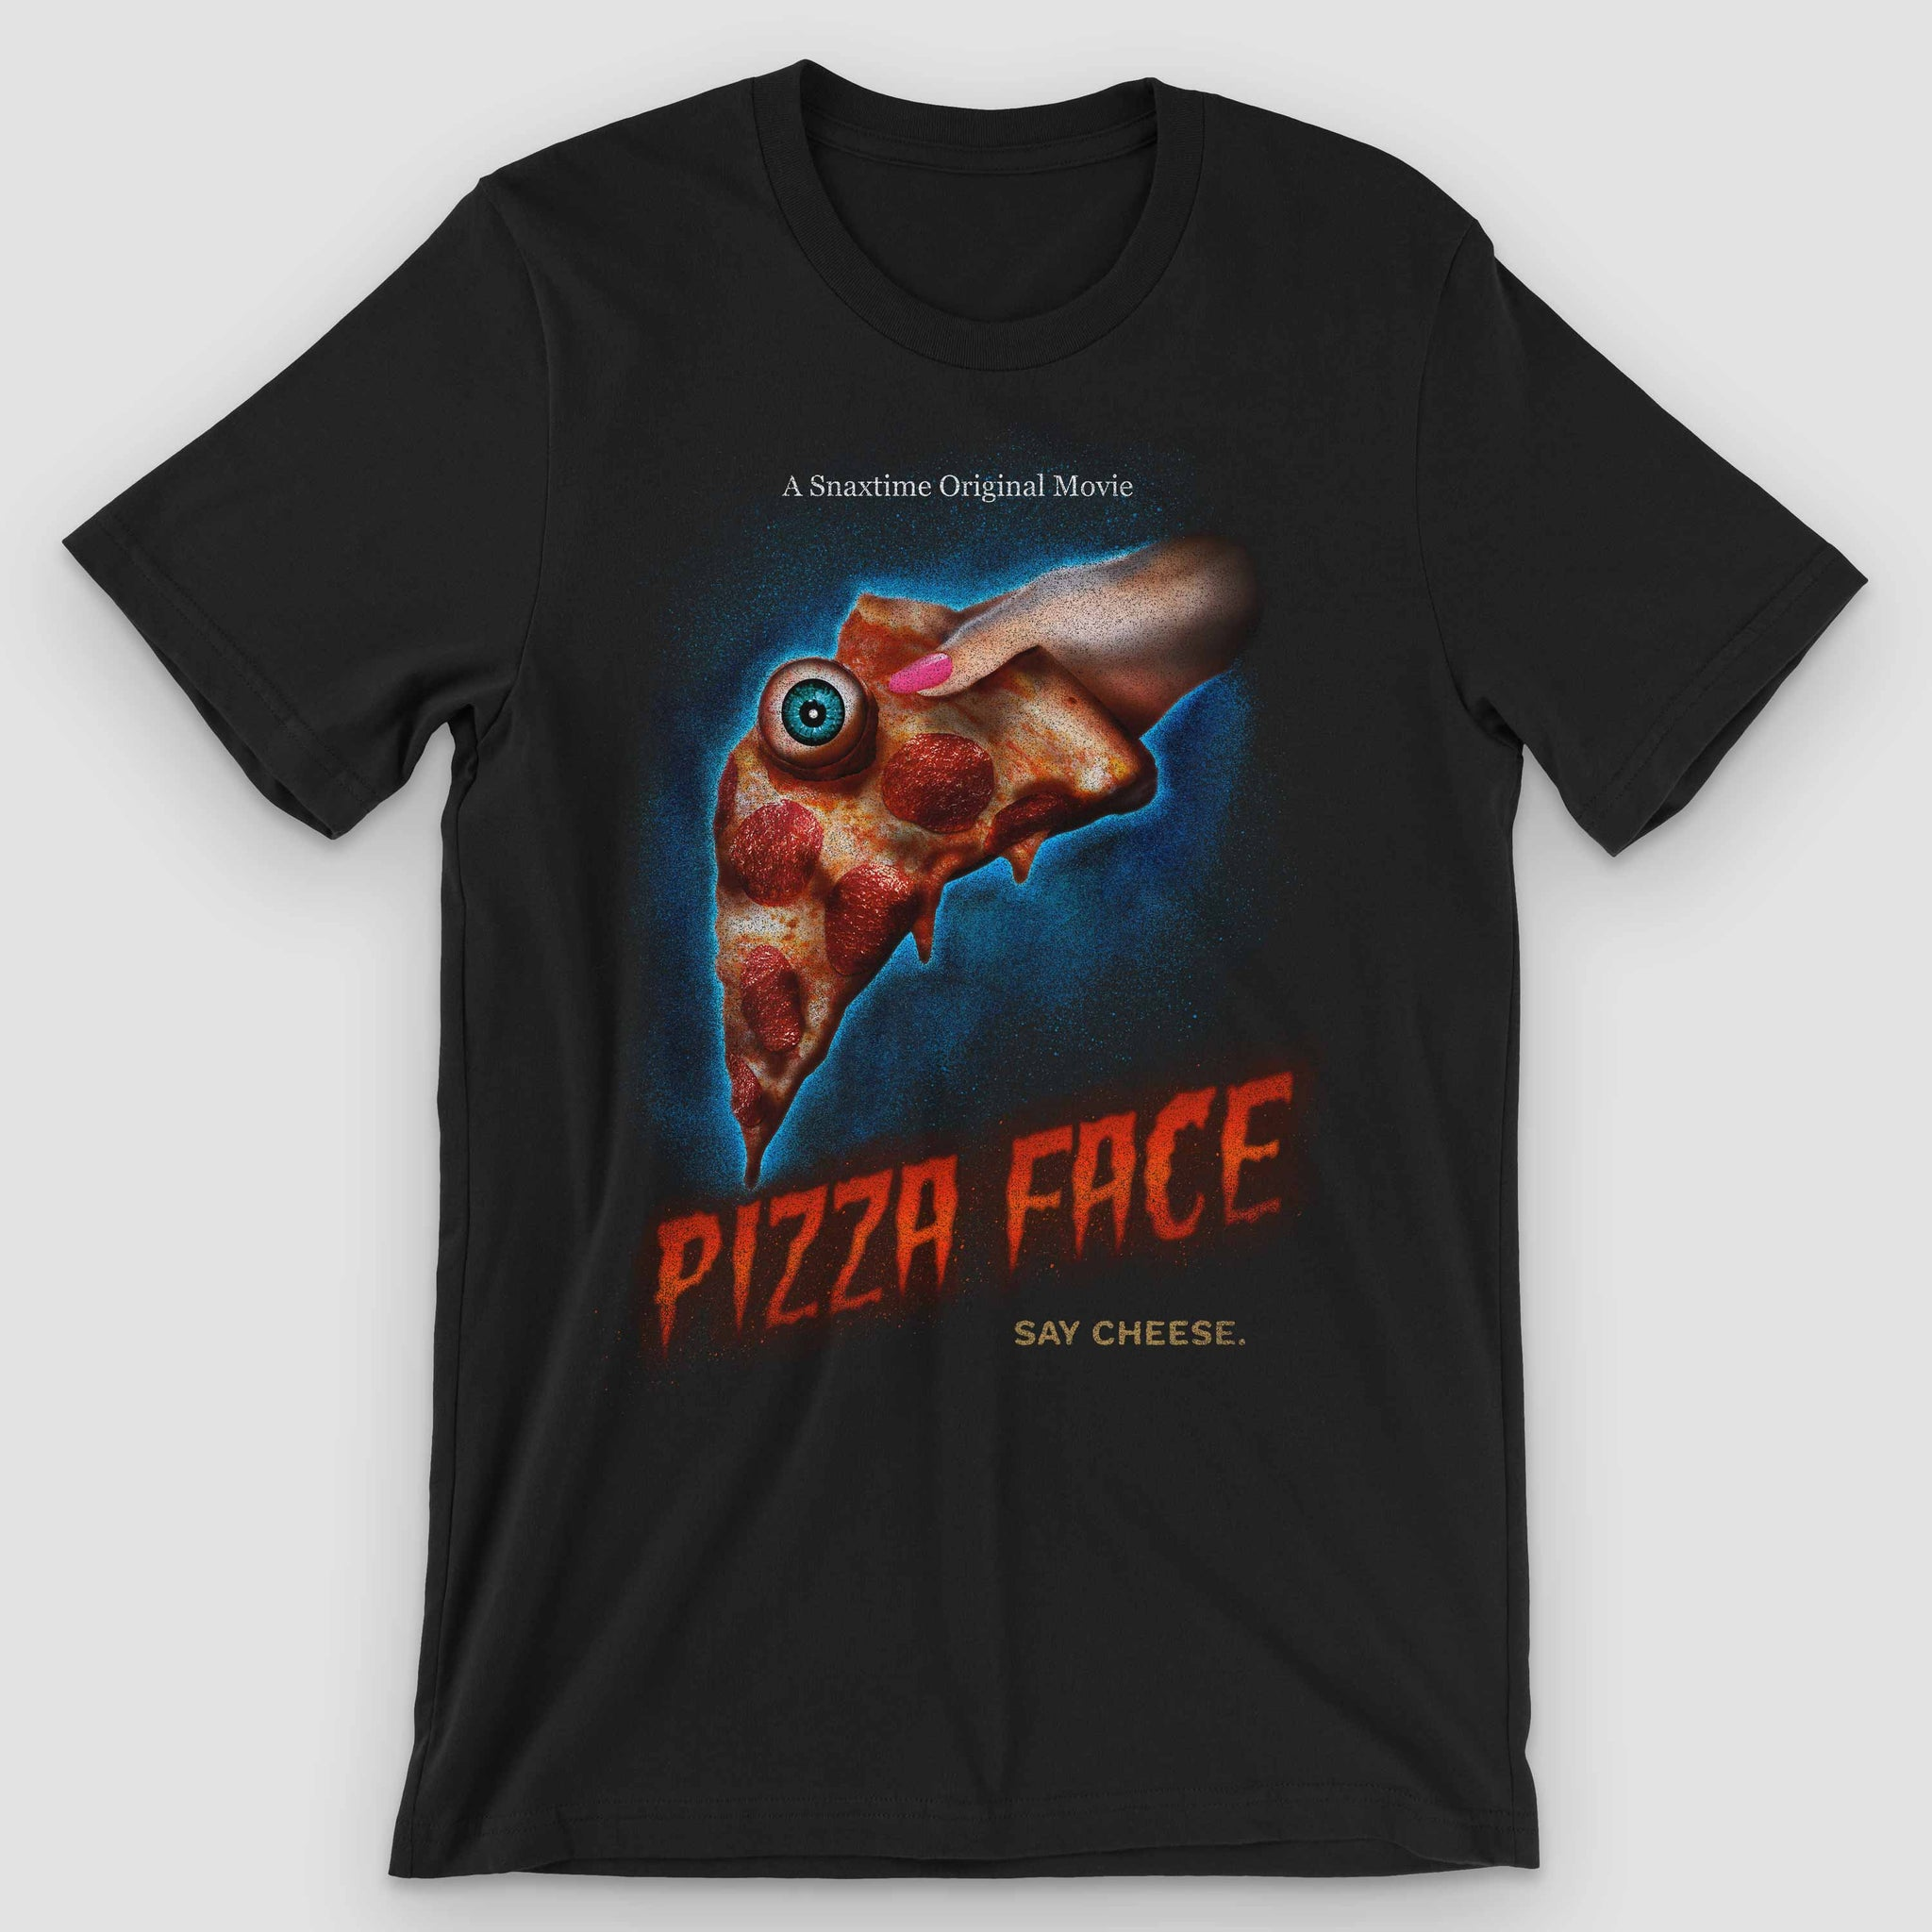 Pizza Face Movie Poster Graphic T-Shirt